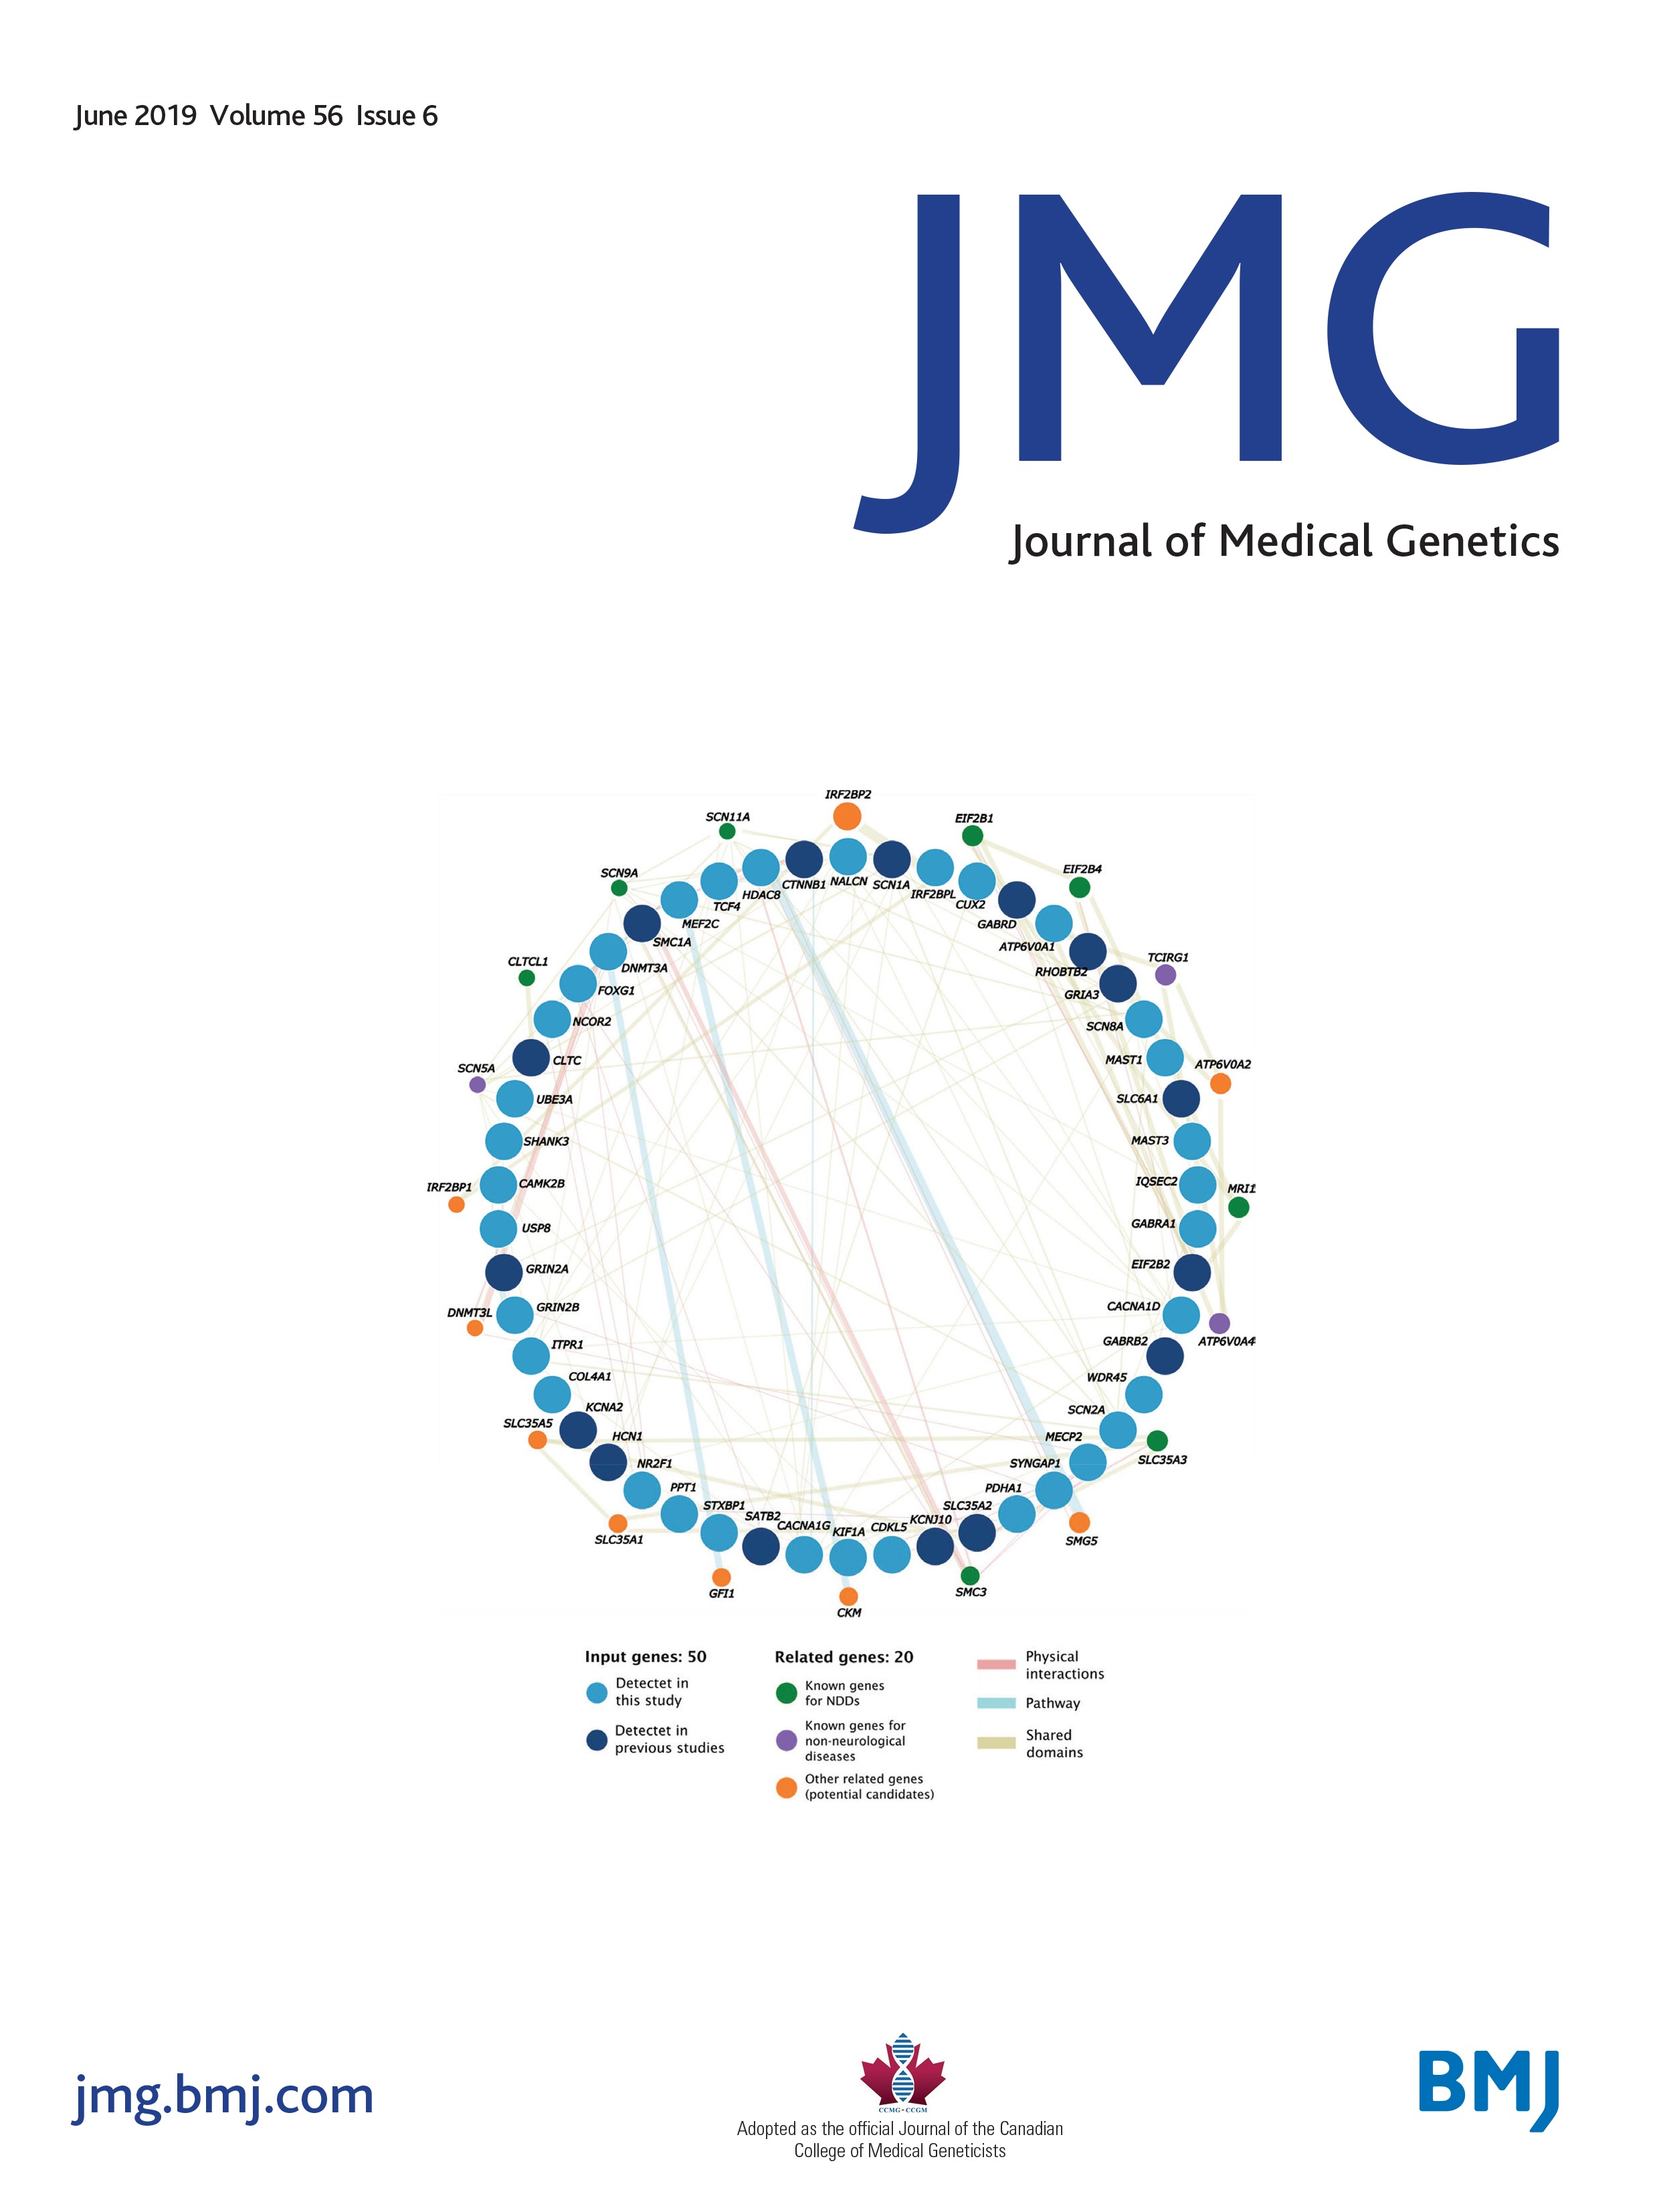 Associations of CDH1 germline variant location and cancer